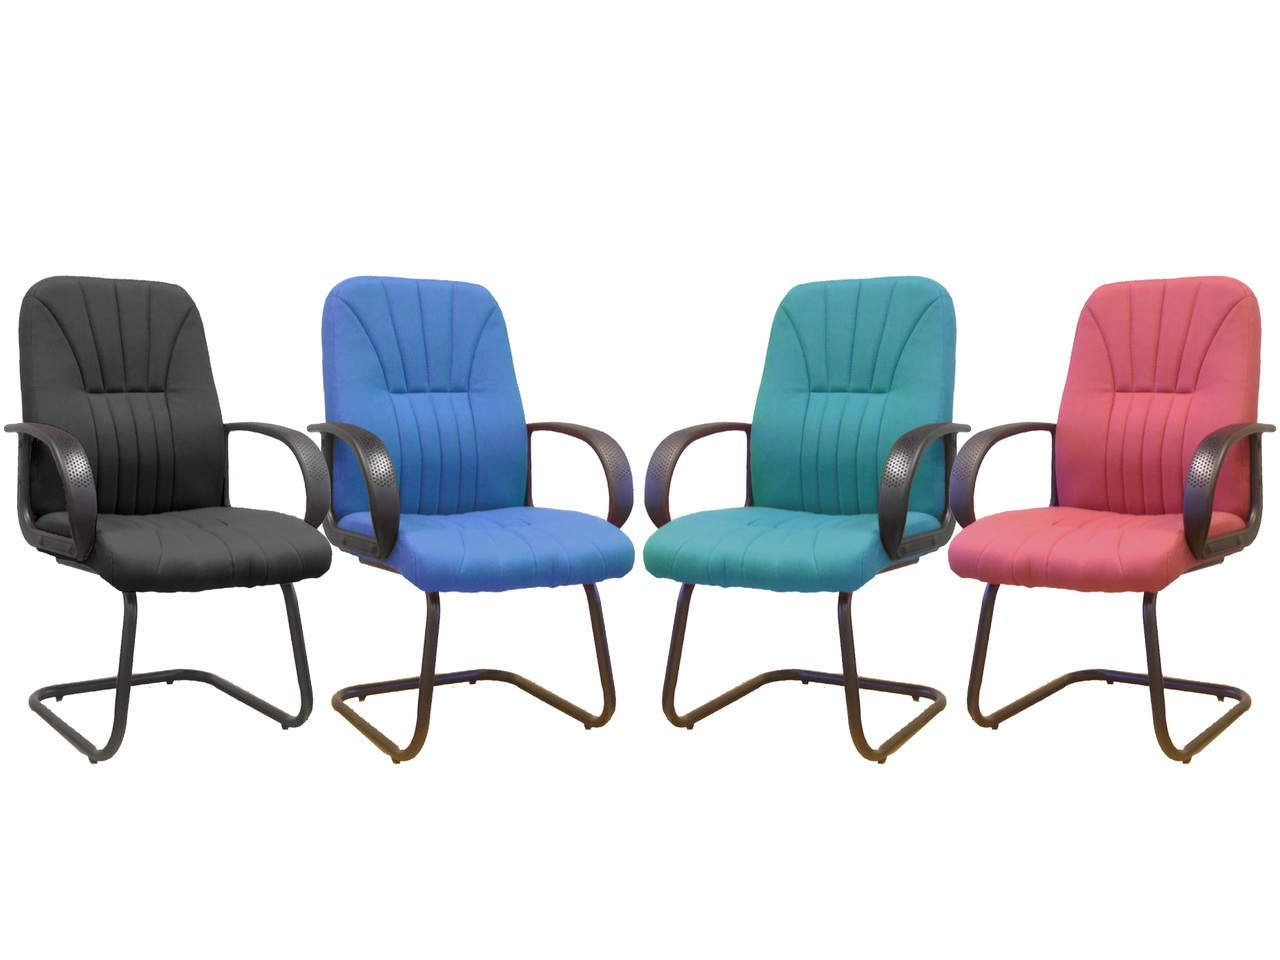 Pluto Visitor Meeting Cantilever with scupltured back in Black, Blue, Green or Red